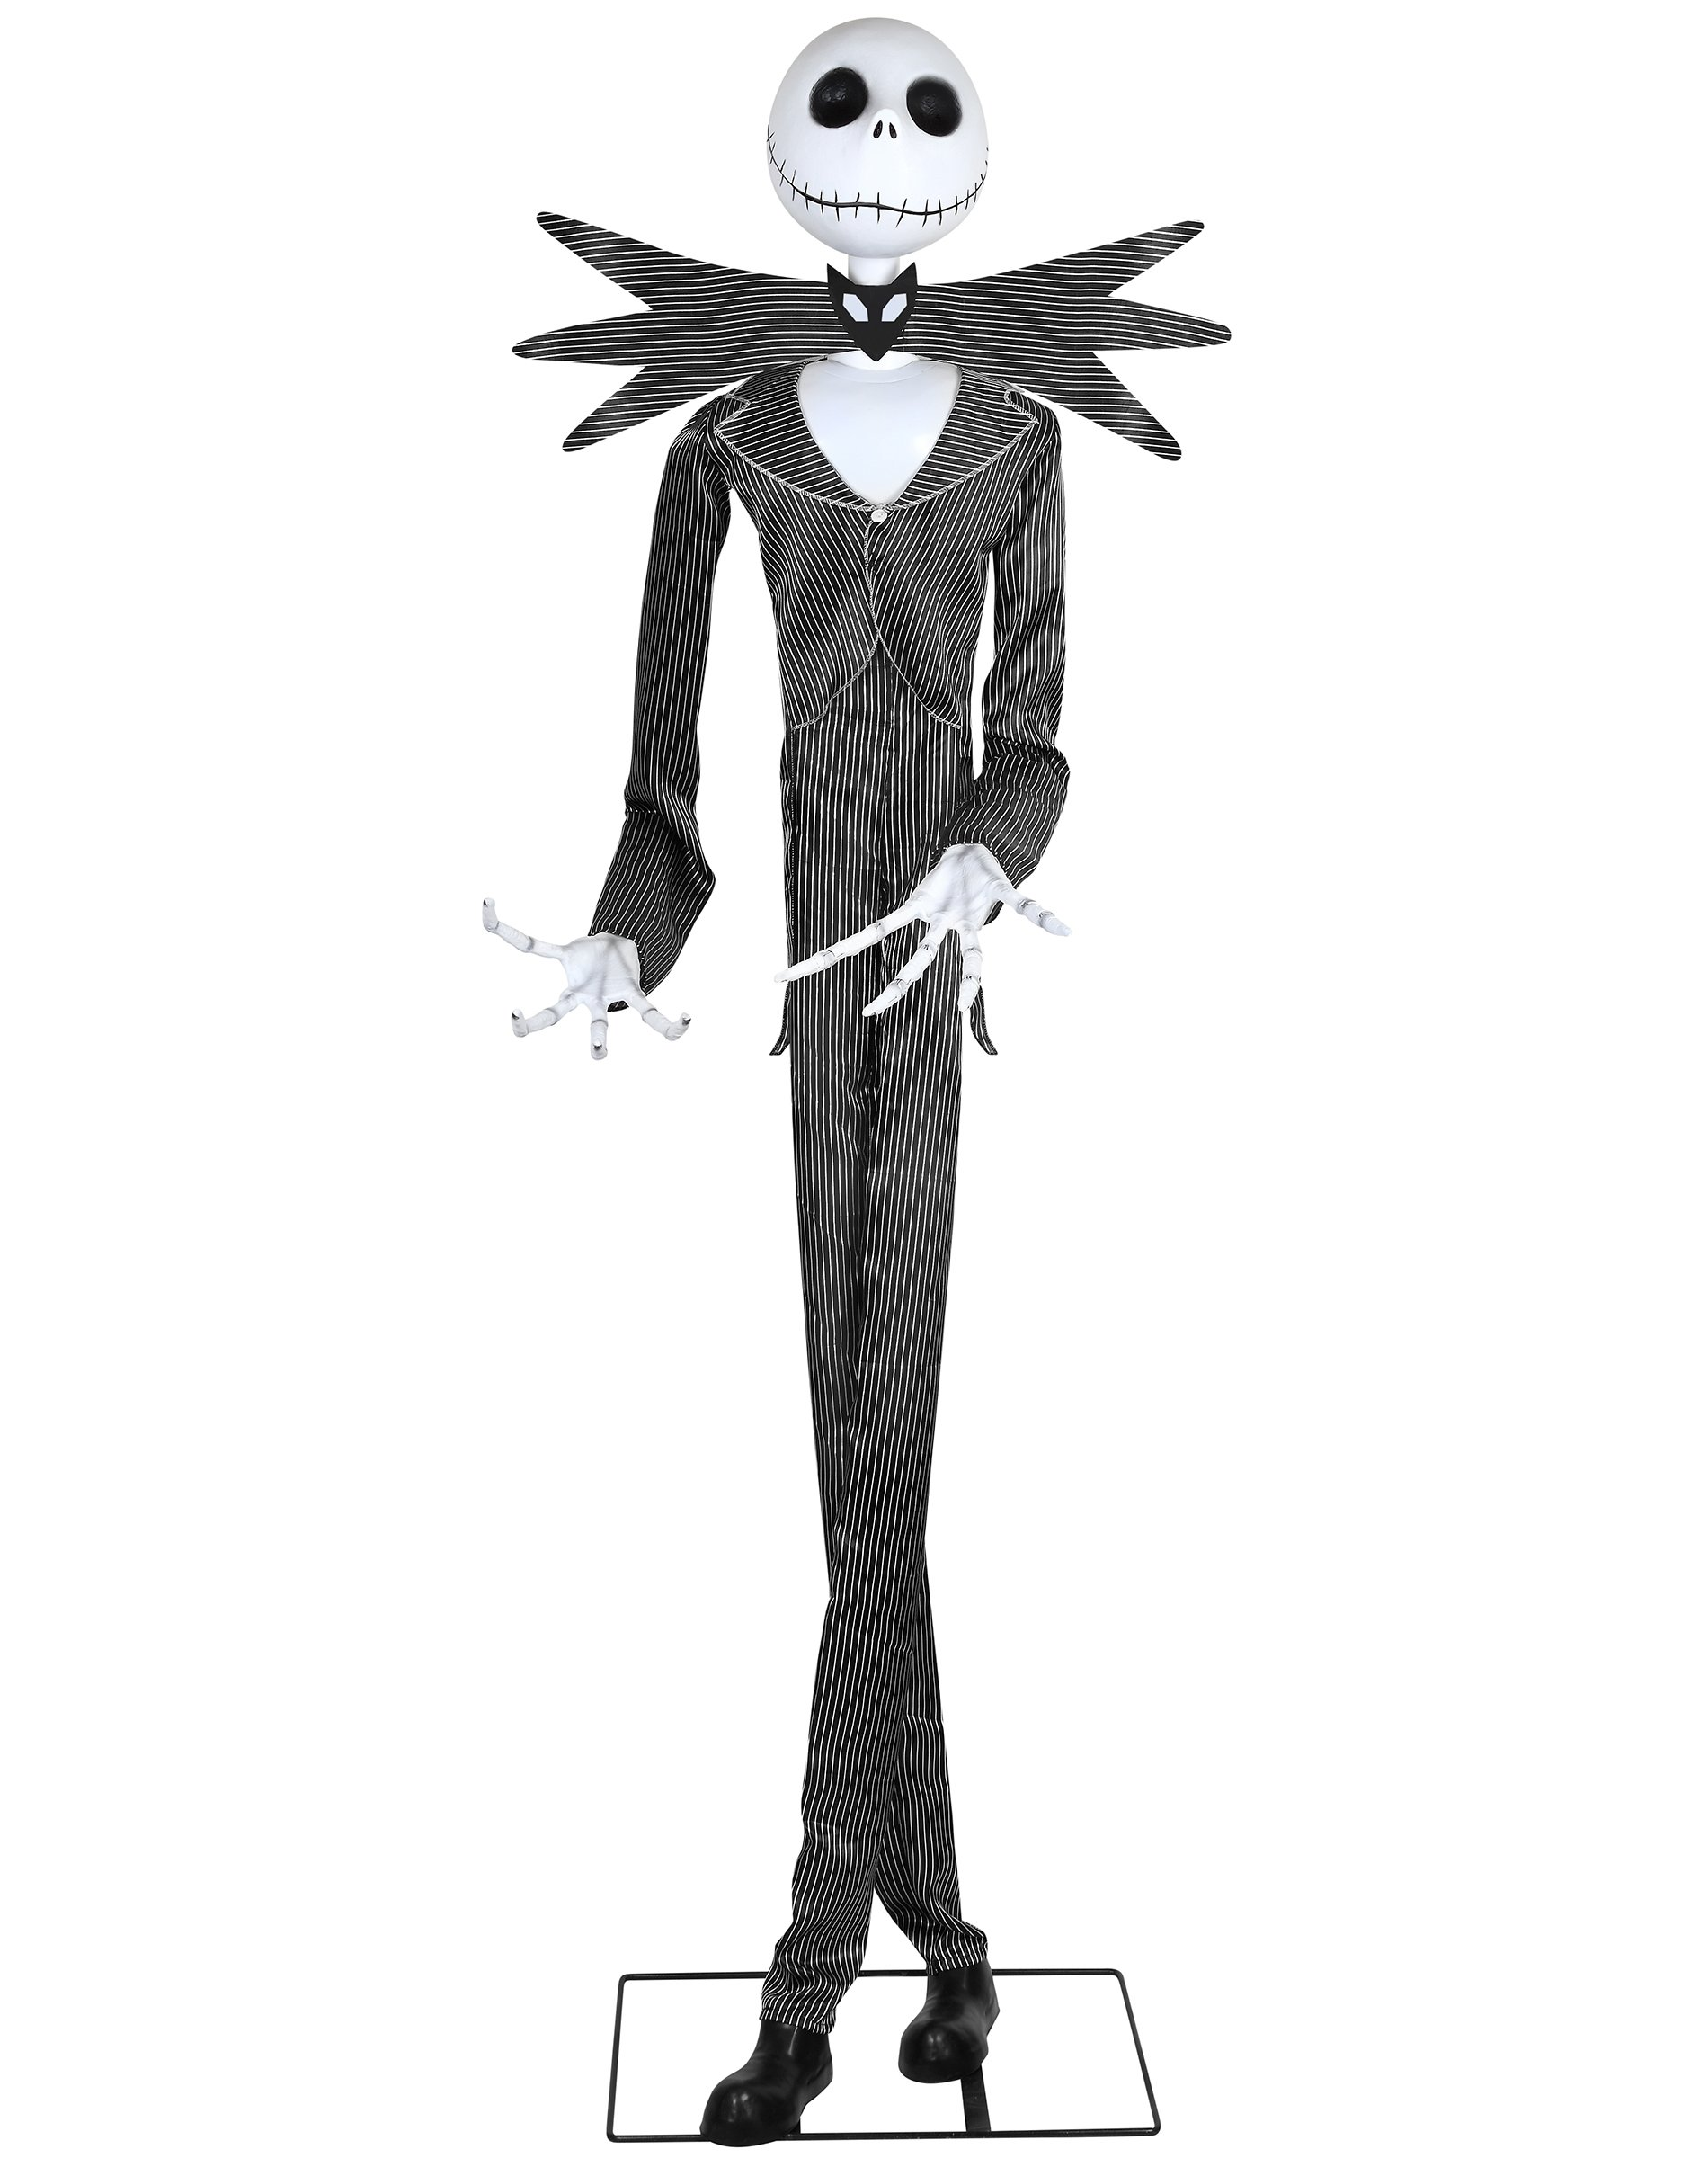 Spirit Halloween 6 Ft Jack Skellington Animatronics Decorations – The Nightmare Before Christmas by Spirit Halloween